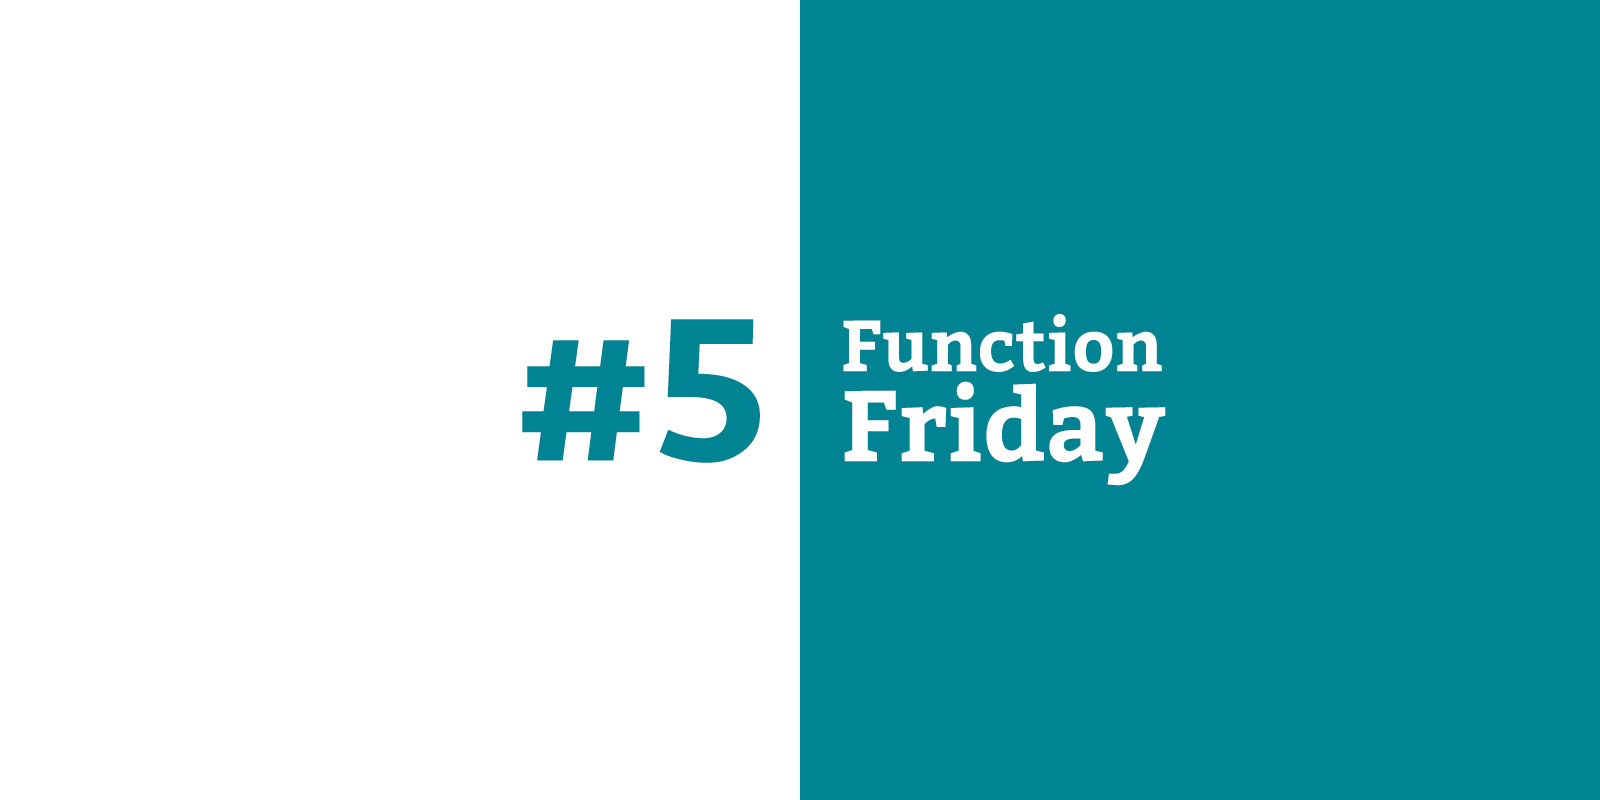 Function Friday #5